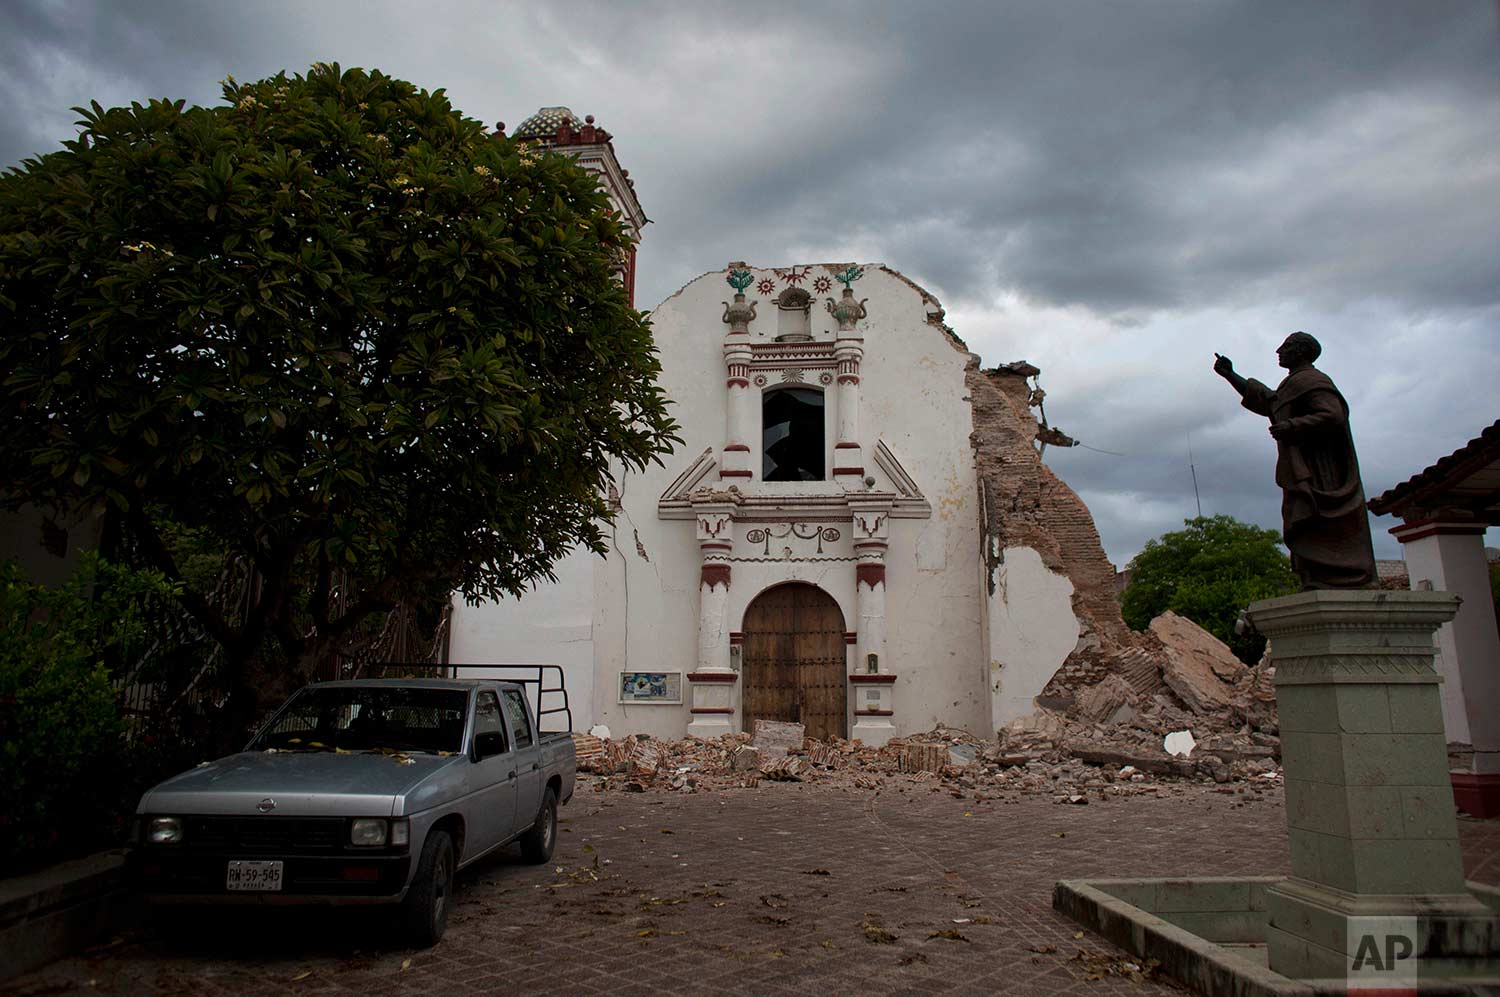 Clouds hover over the damaged San Vicente church on Sunday, Sept. 10, 2017 after an 8.1 magnitude earthquake the previous week in Juchitan, Oaxaca state, Mexico. In Juchitan, a third of the homes are reported uninhabitable and repeated aftershocks have scared people away from many structures still standing. (AP Photo/Rebecca Blackwell)